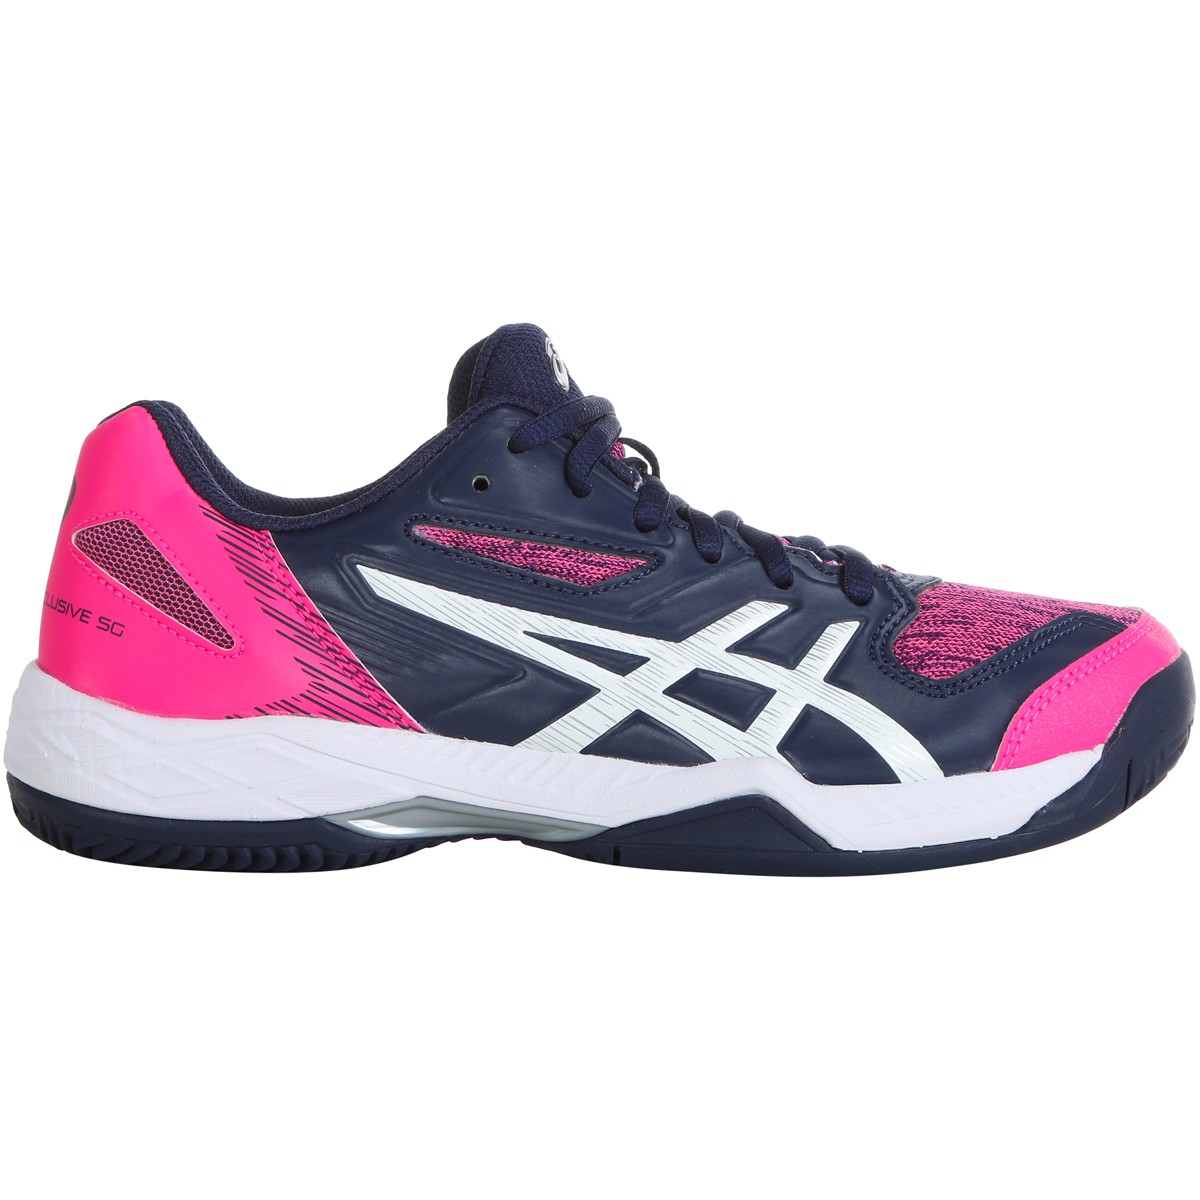 CHAUSSURES ASICS FEMME GEL PADEL EXCLUSIVE 5